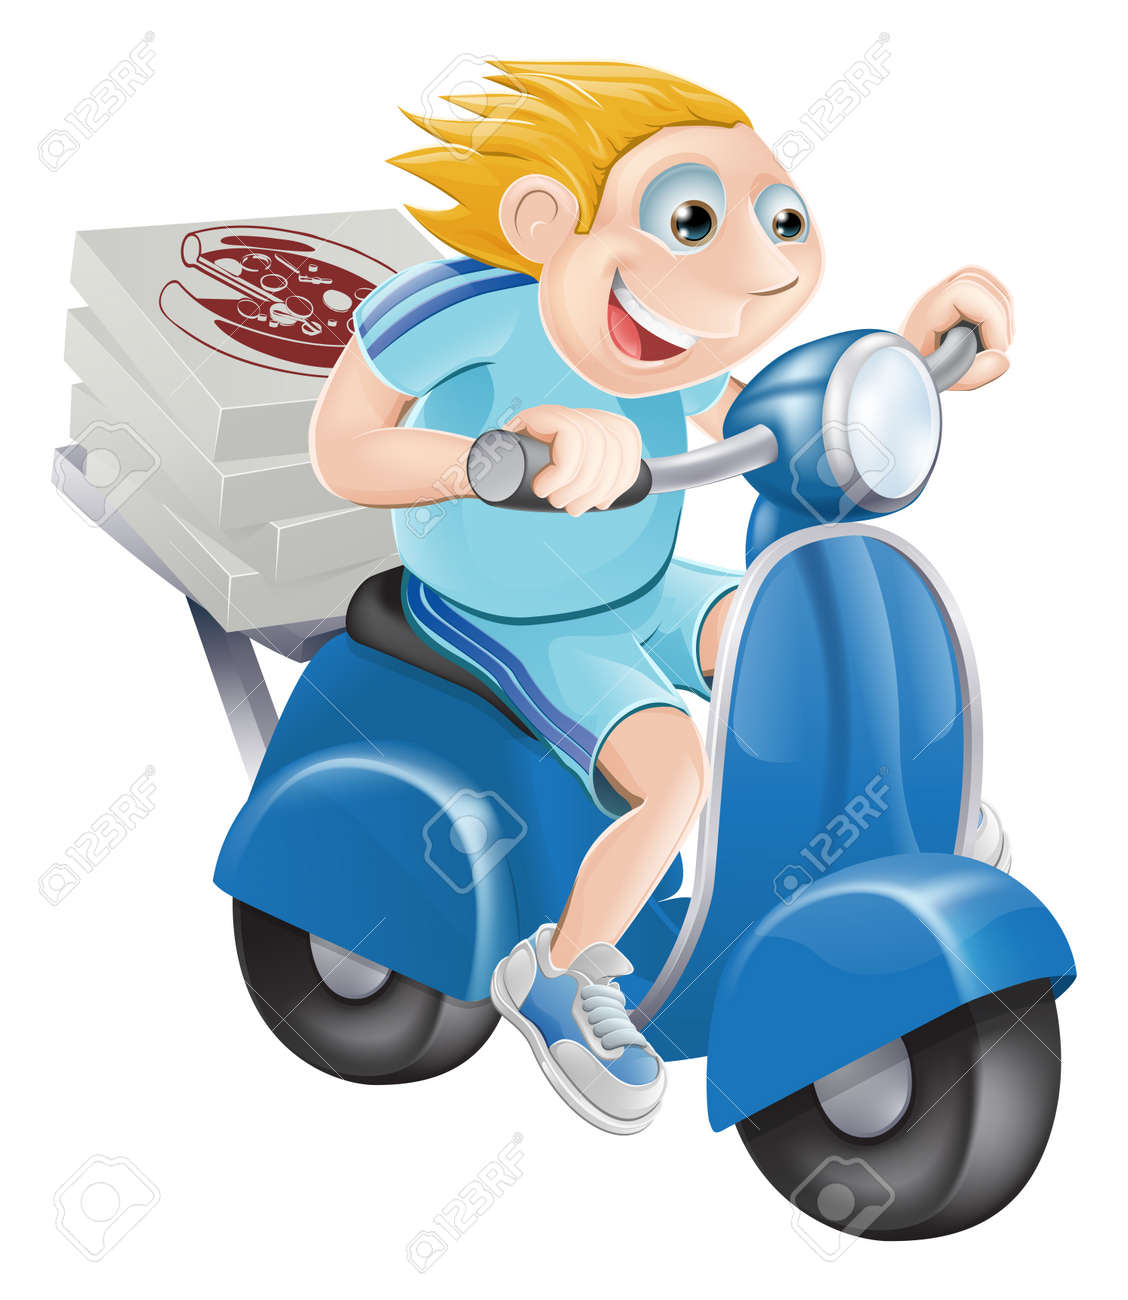 A cartoon pizza delivery man delivering pizza on his moped motor bike. Stock Vector - 14795223